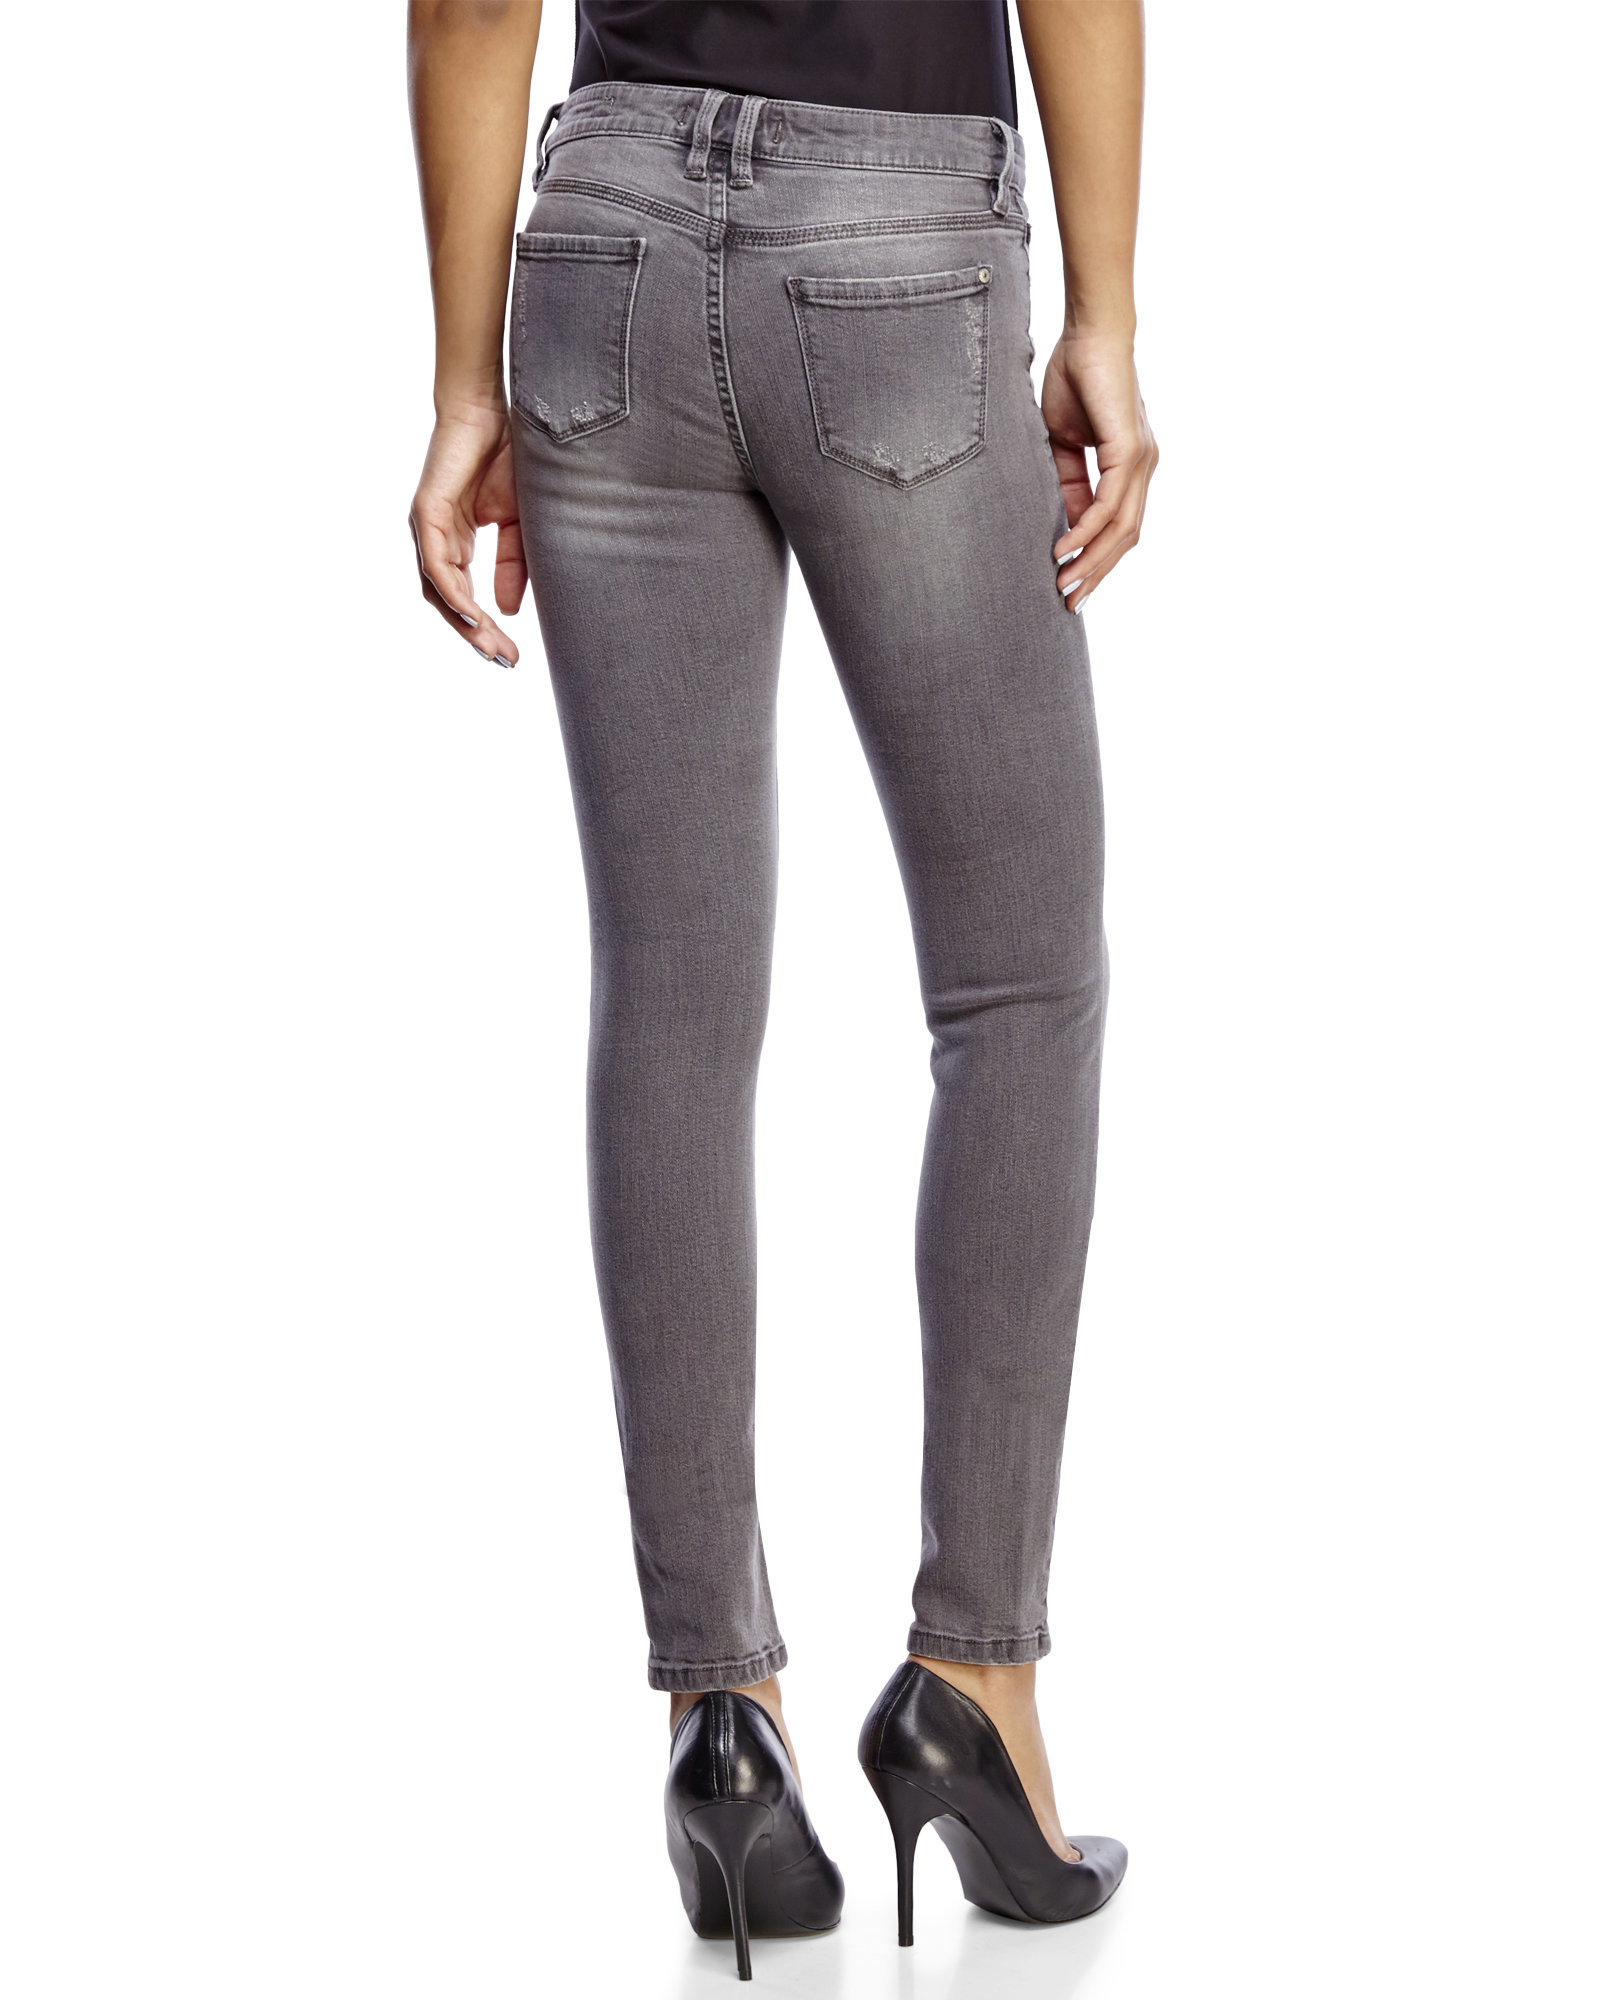 eunina grey mid rise skinny jeans in gray lyst. Black Bedroom Furniture Sets. Home Design Ideas